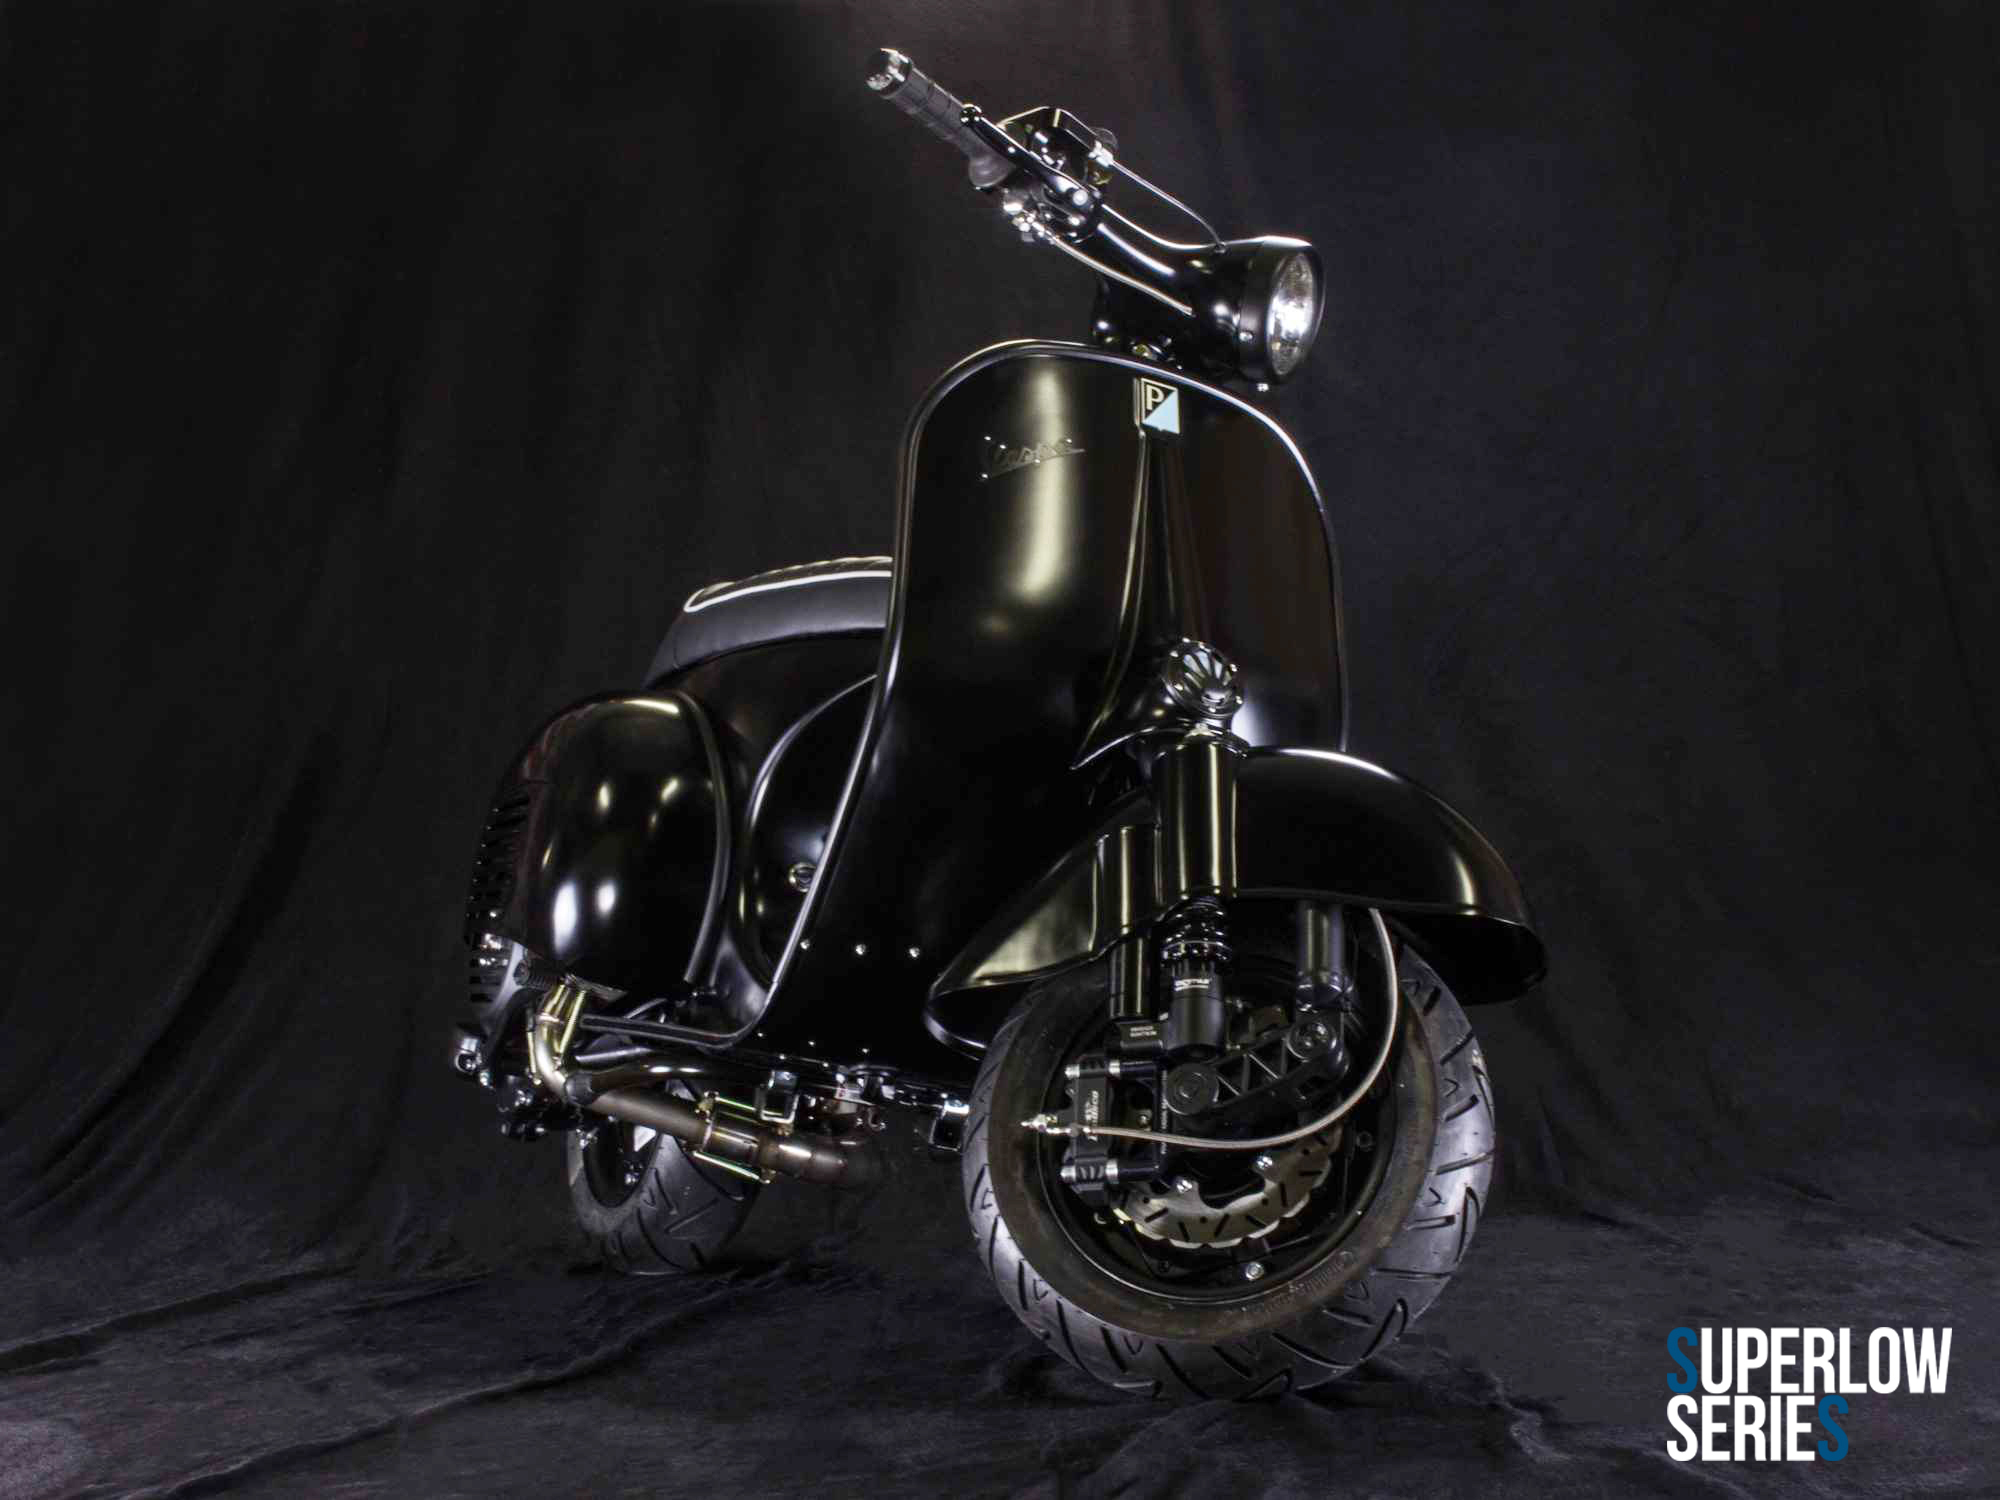 Custom Vespa Superlow Series matt schwarz